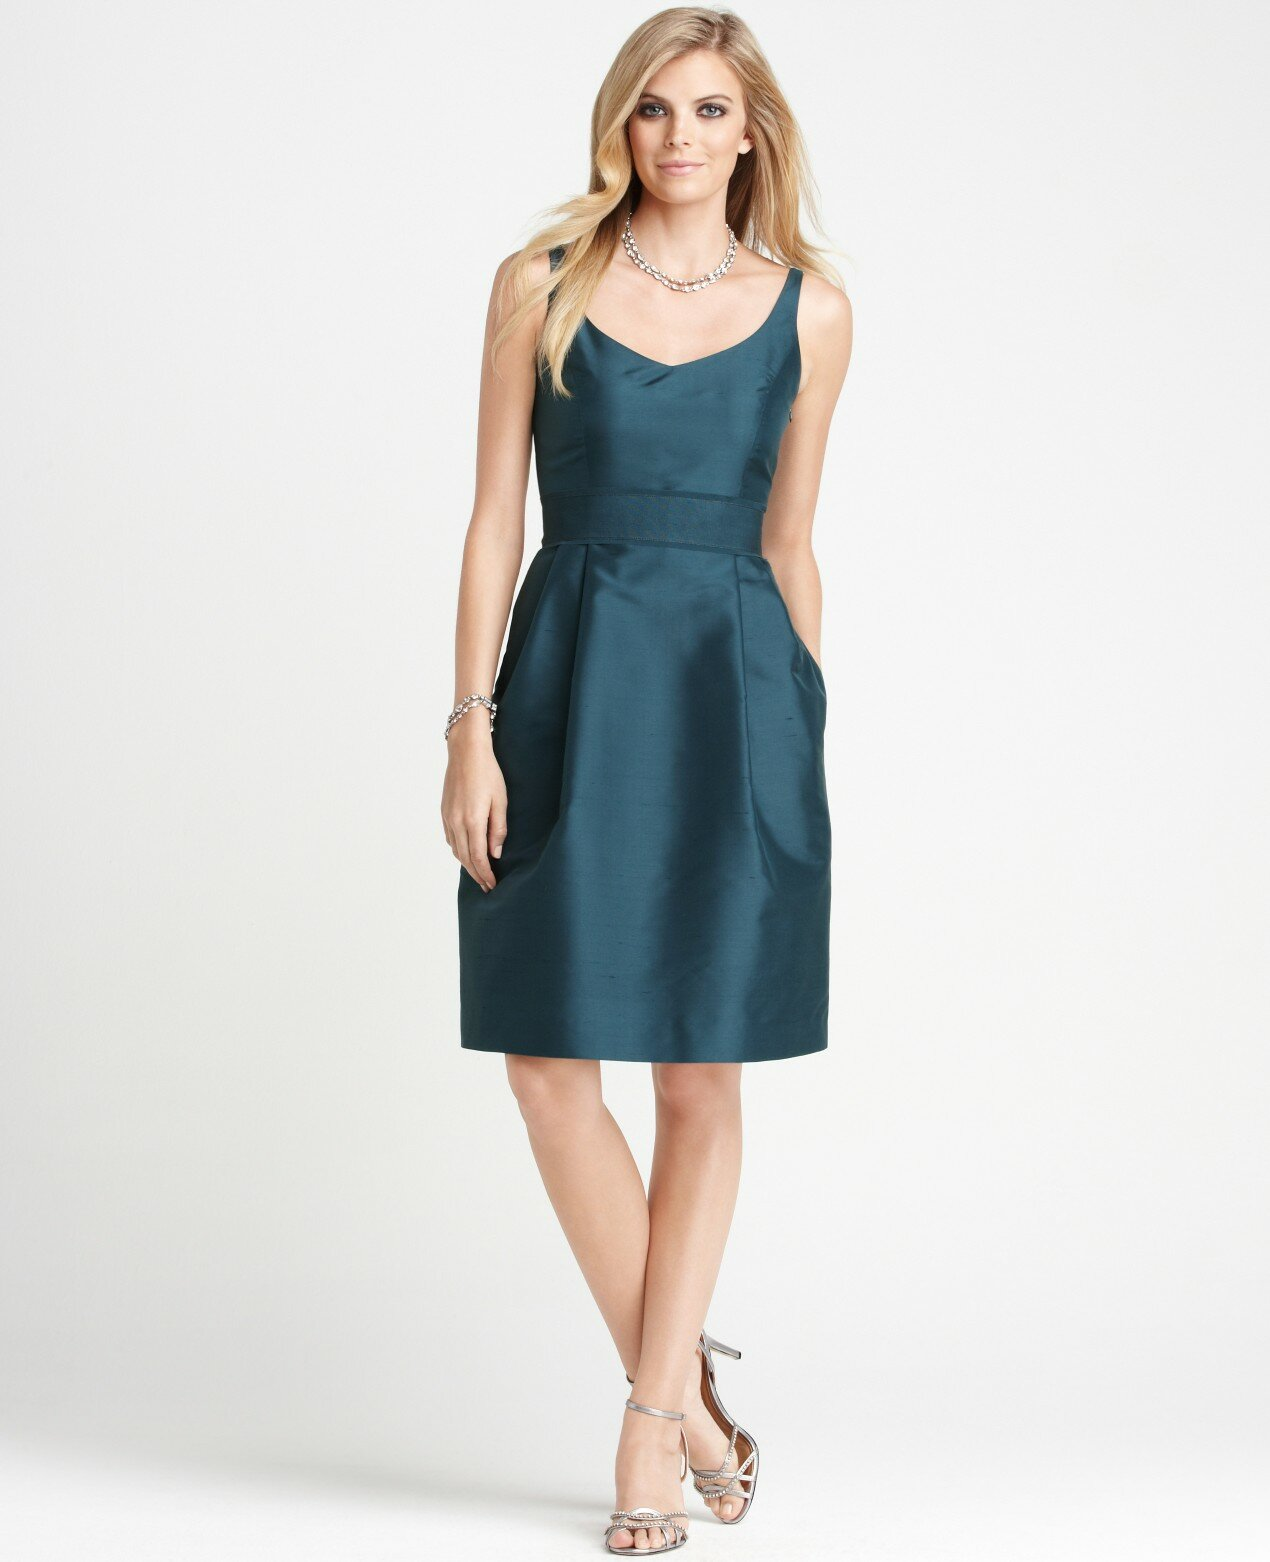 Ann Taylor wedding bridesmaid dresses Photo - 2